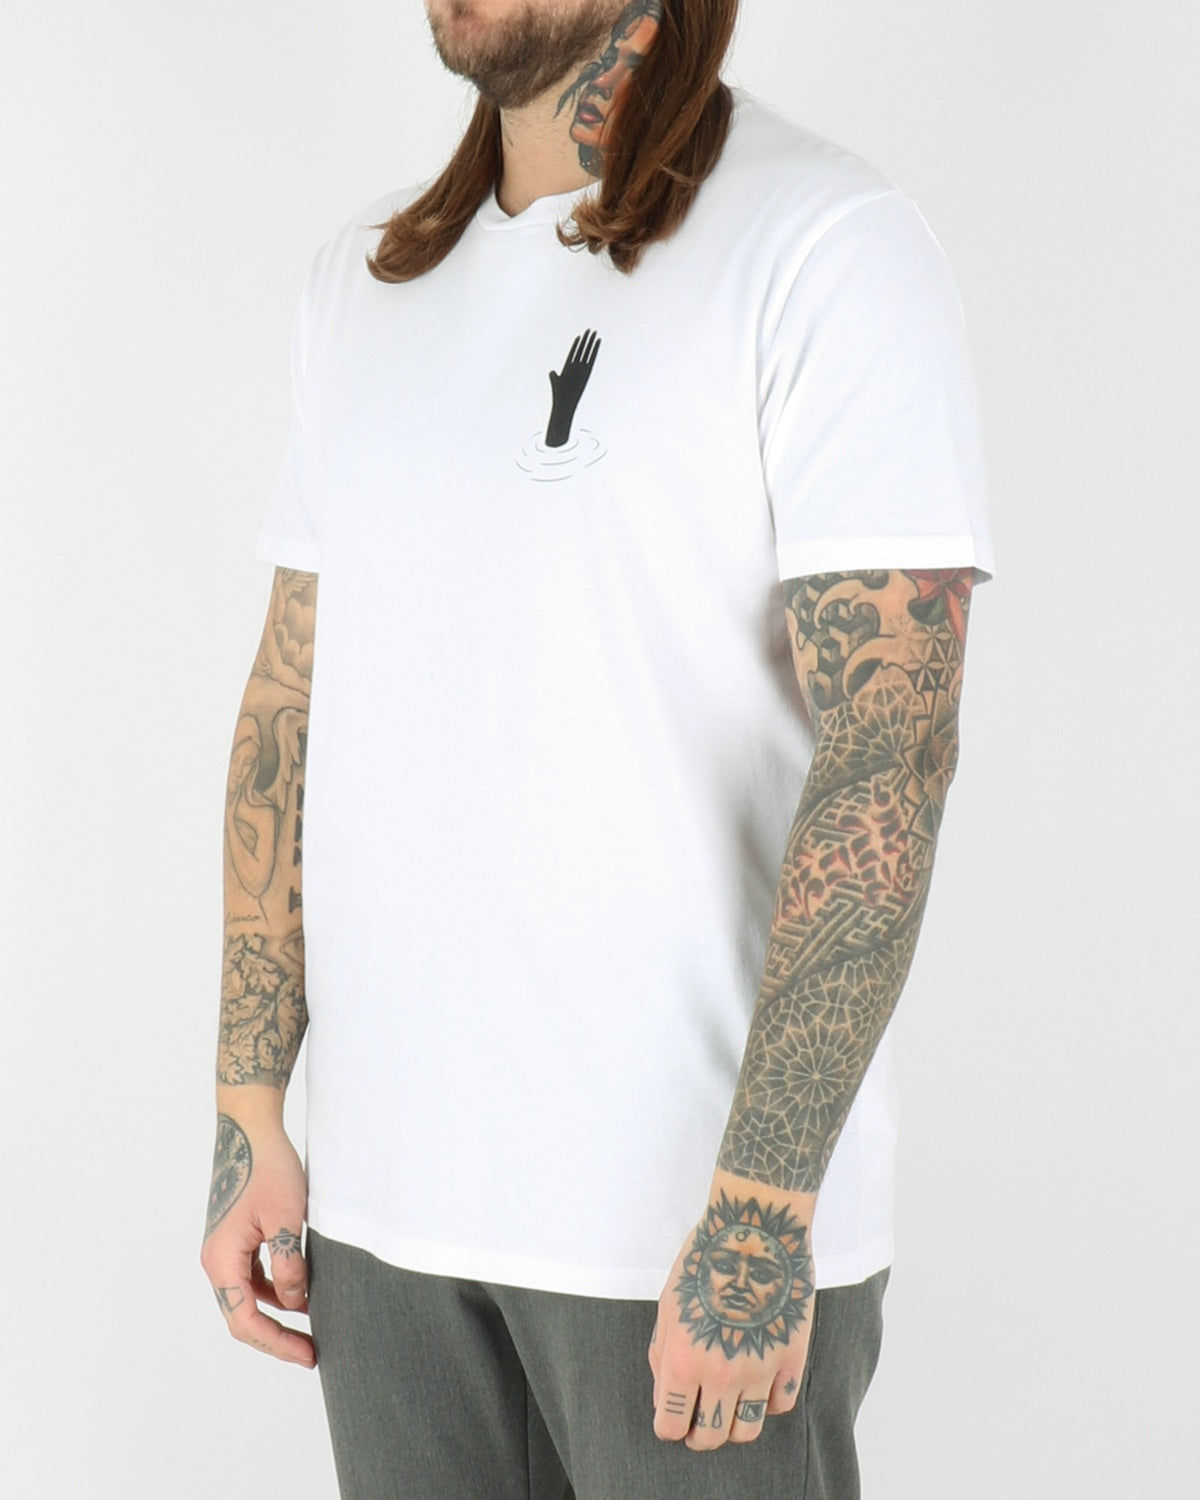 wood wood_hand t-shirt_bright white_3_4